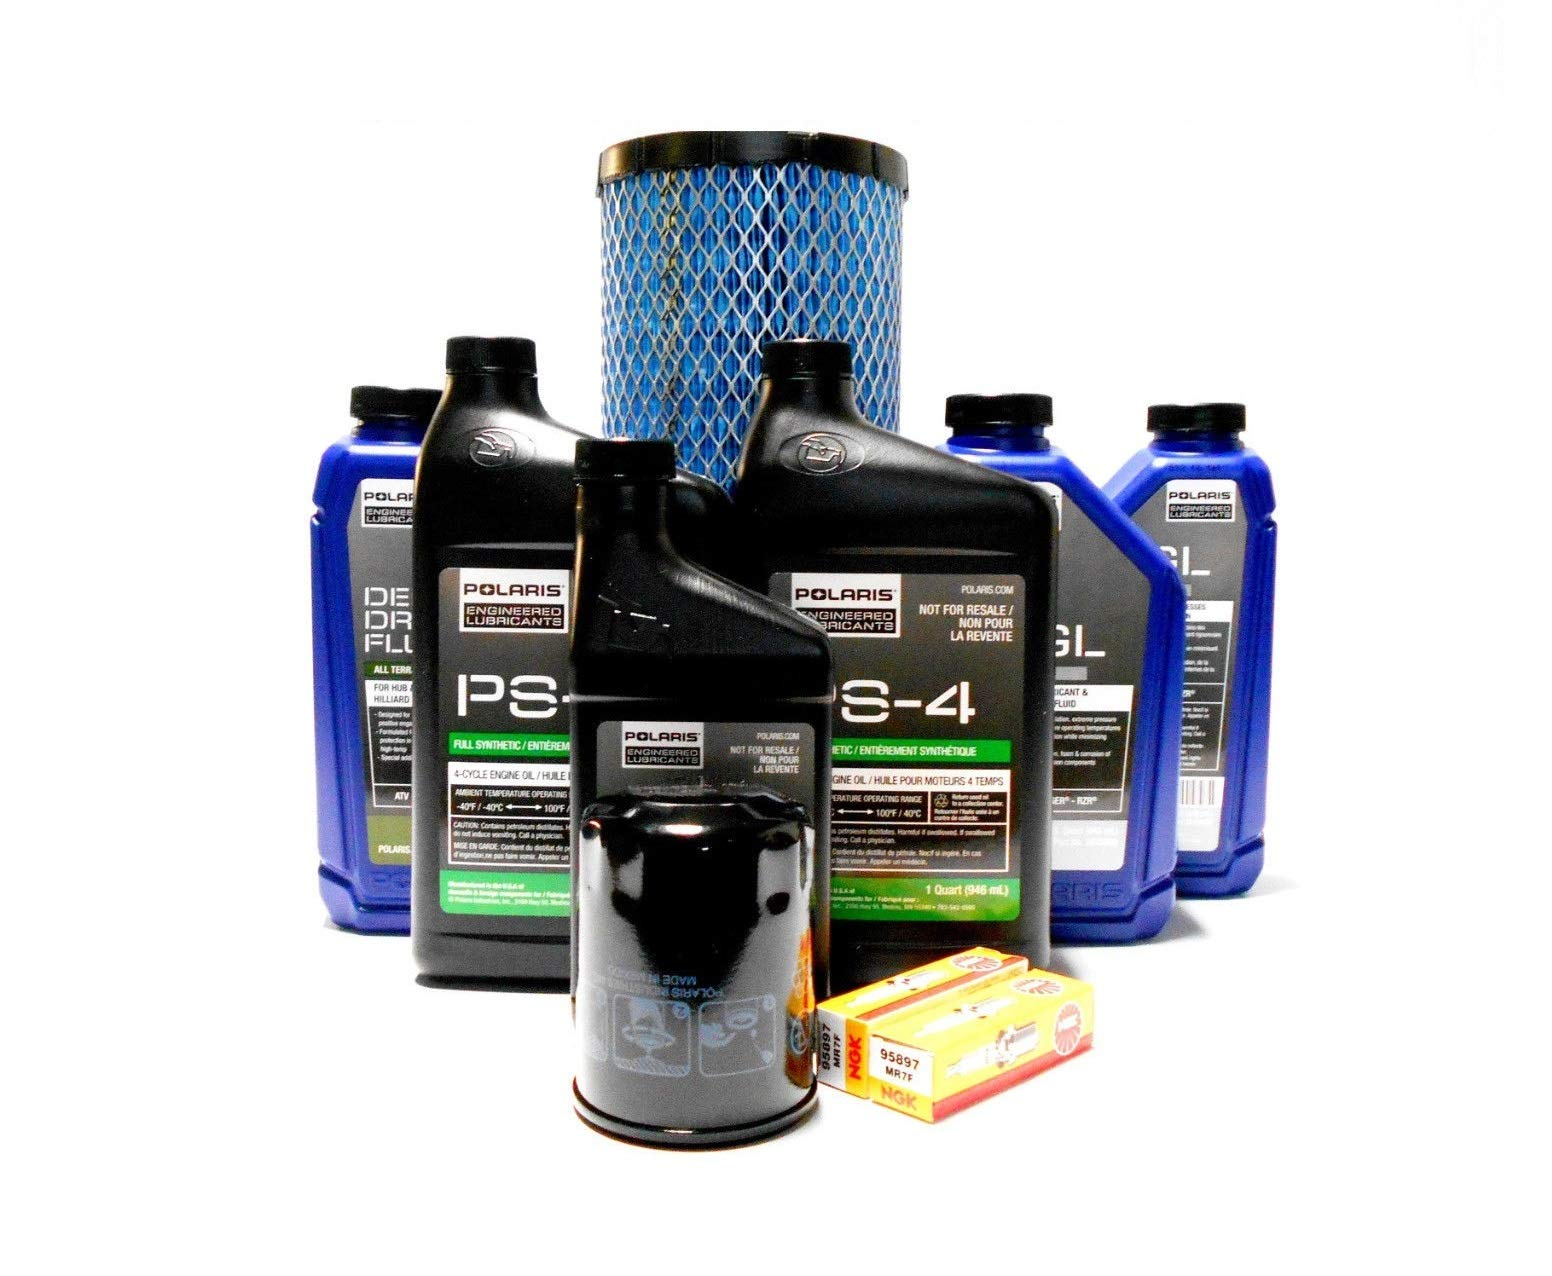 Polaris Ace General RZR OEM Complete Oil Change Service Kit POL06 by Powersports Authority (Image #1)